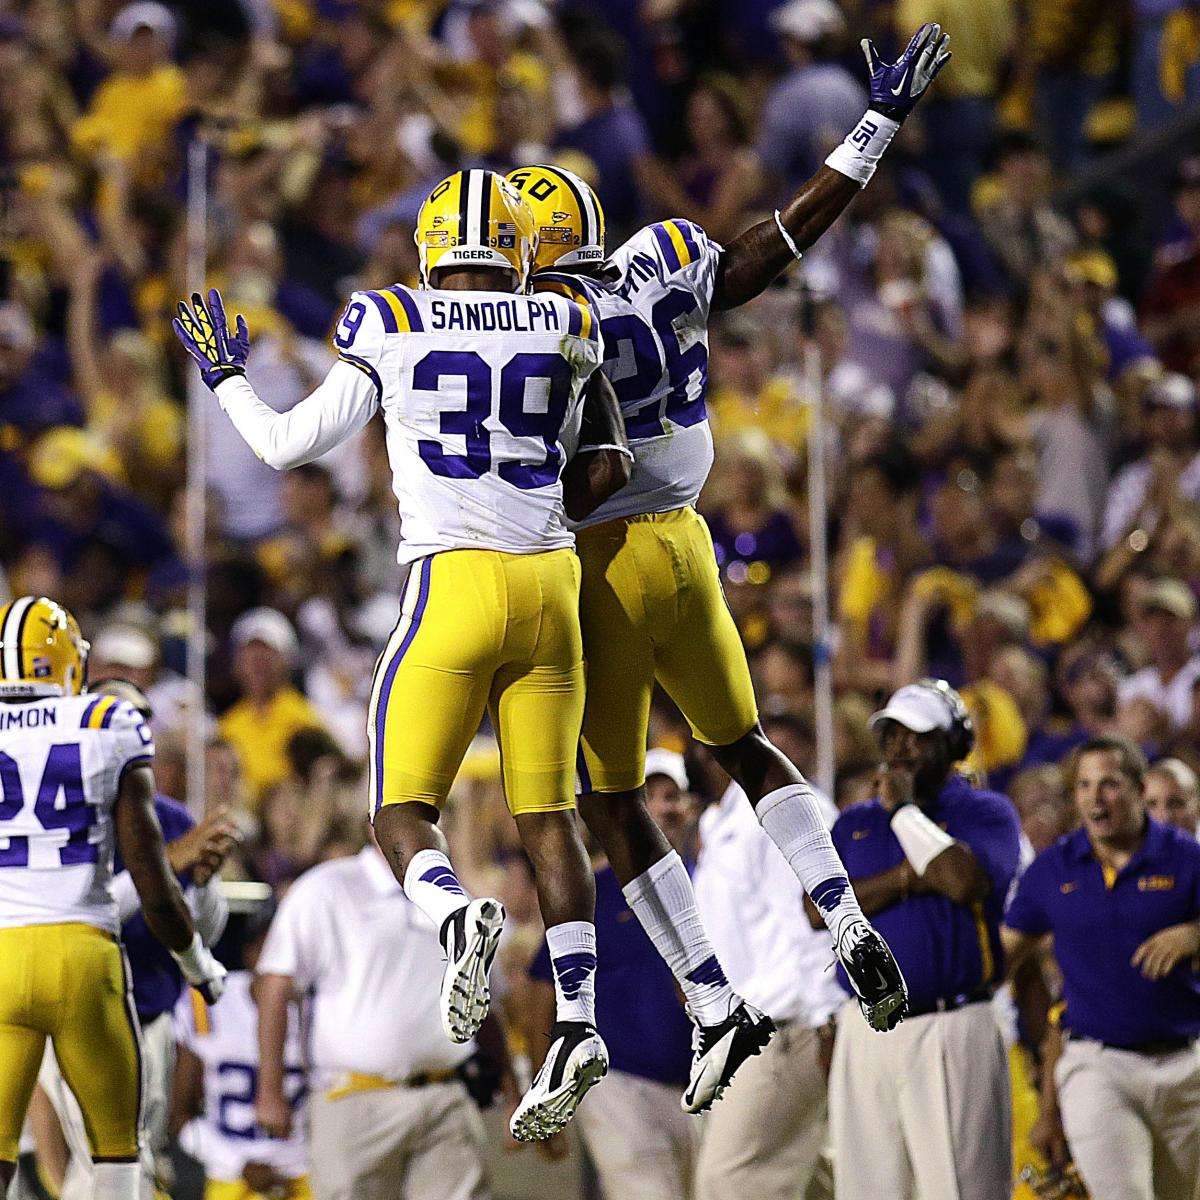 LSU Football: Tigers Confirm 4 Players Have Left the ...